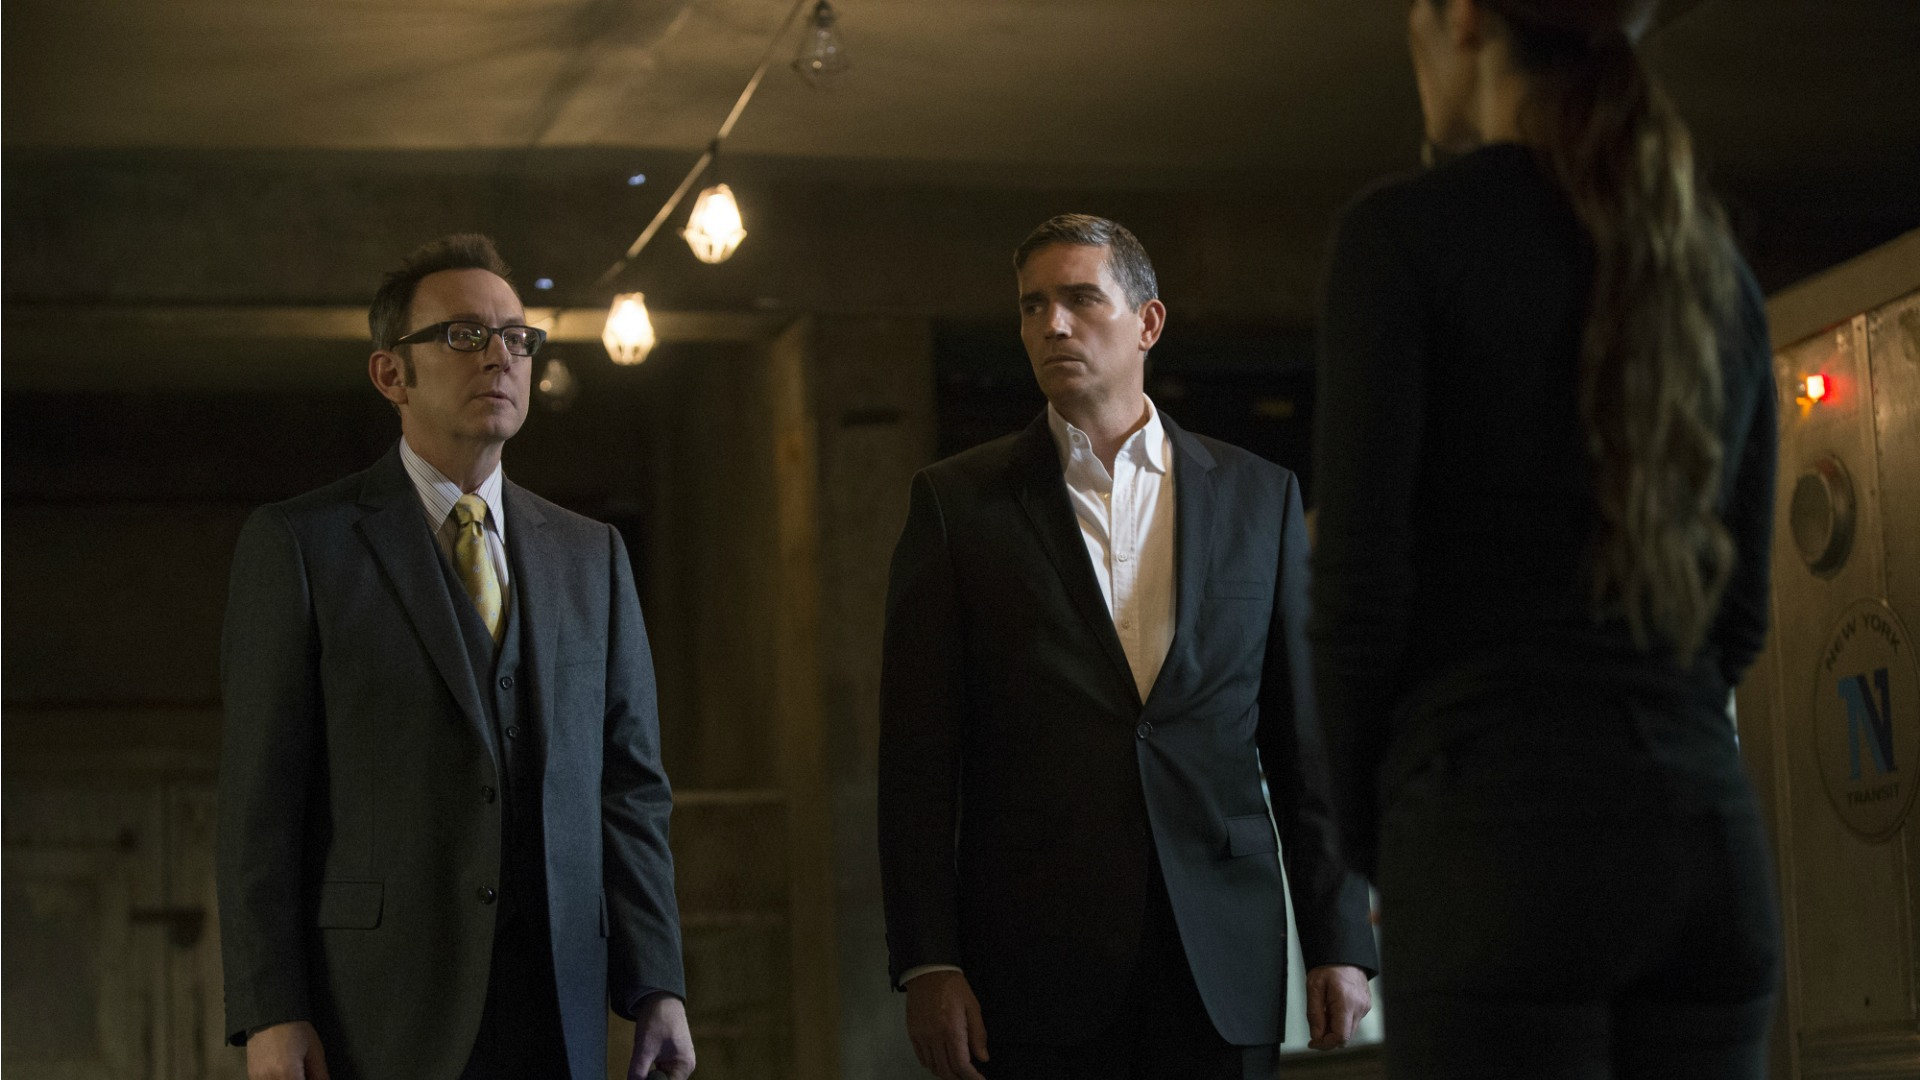 Shaw, Finch, and Reese have a serious conversation.